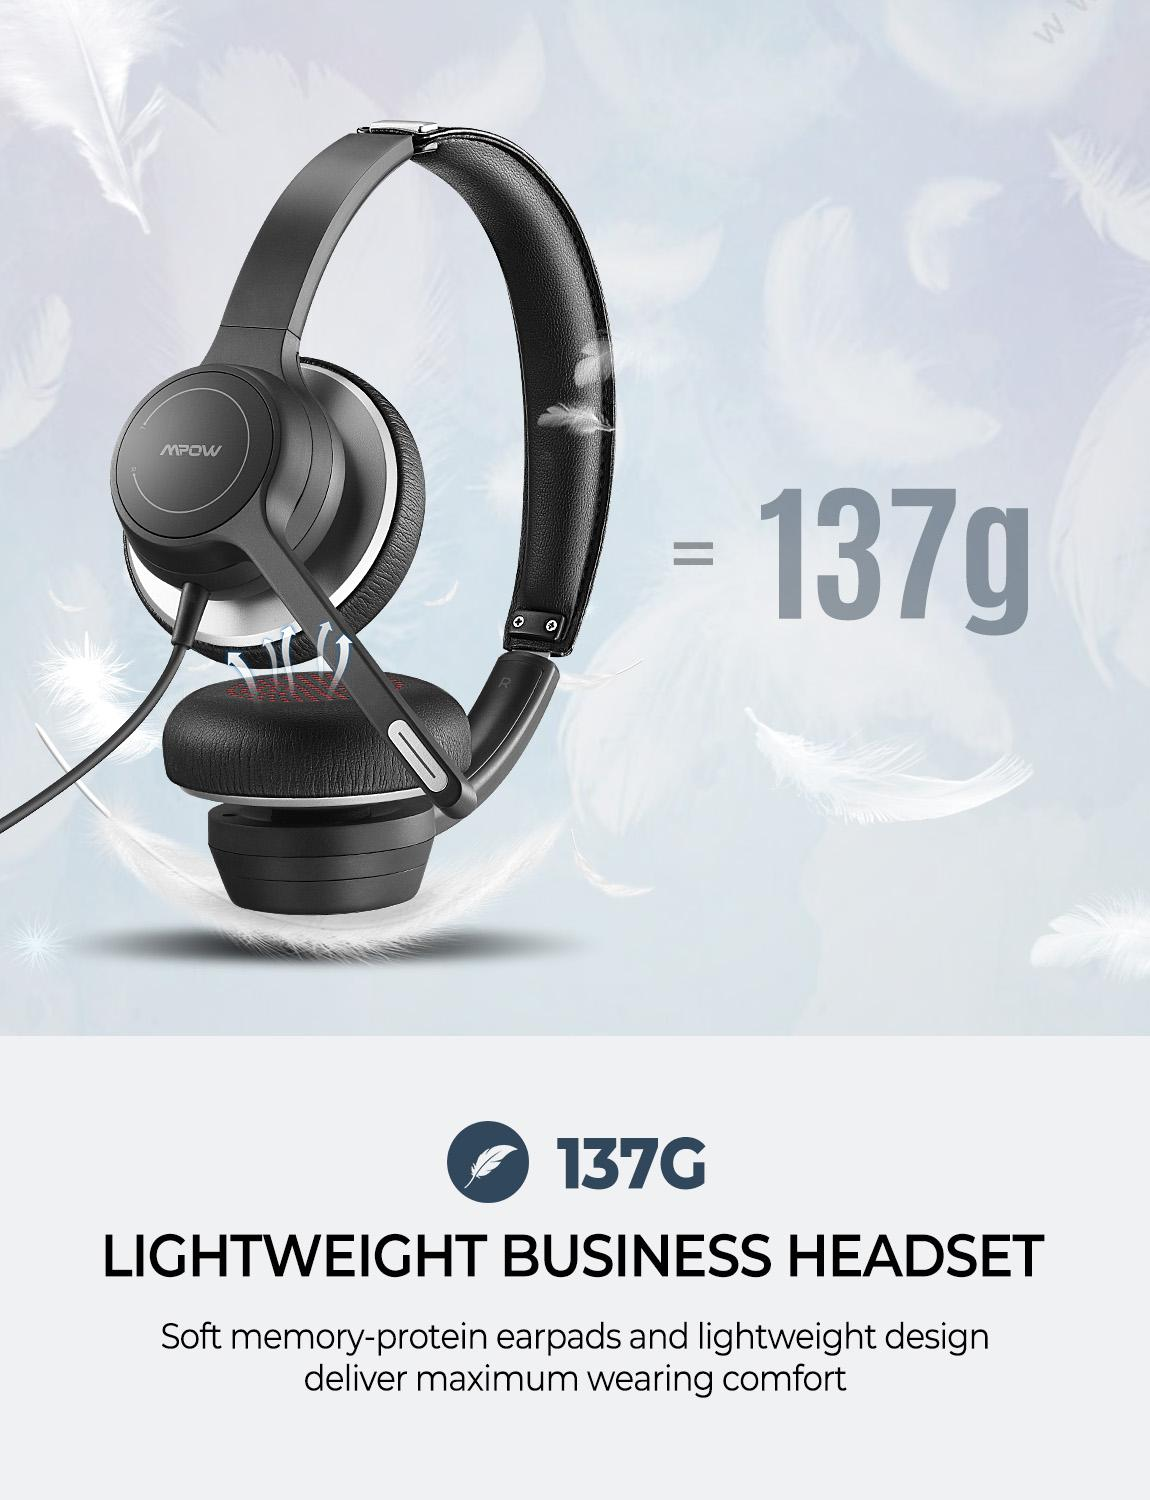 cheapest Mpow BH328 Office Headset Lightweight 3 5mm USB Computer Headset Noise Reduction Headphone for Call Center Skype PC Cellphone